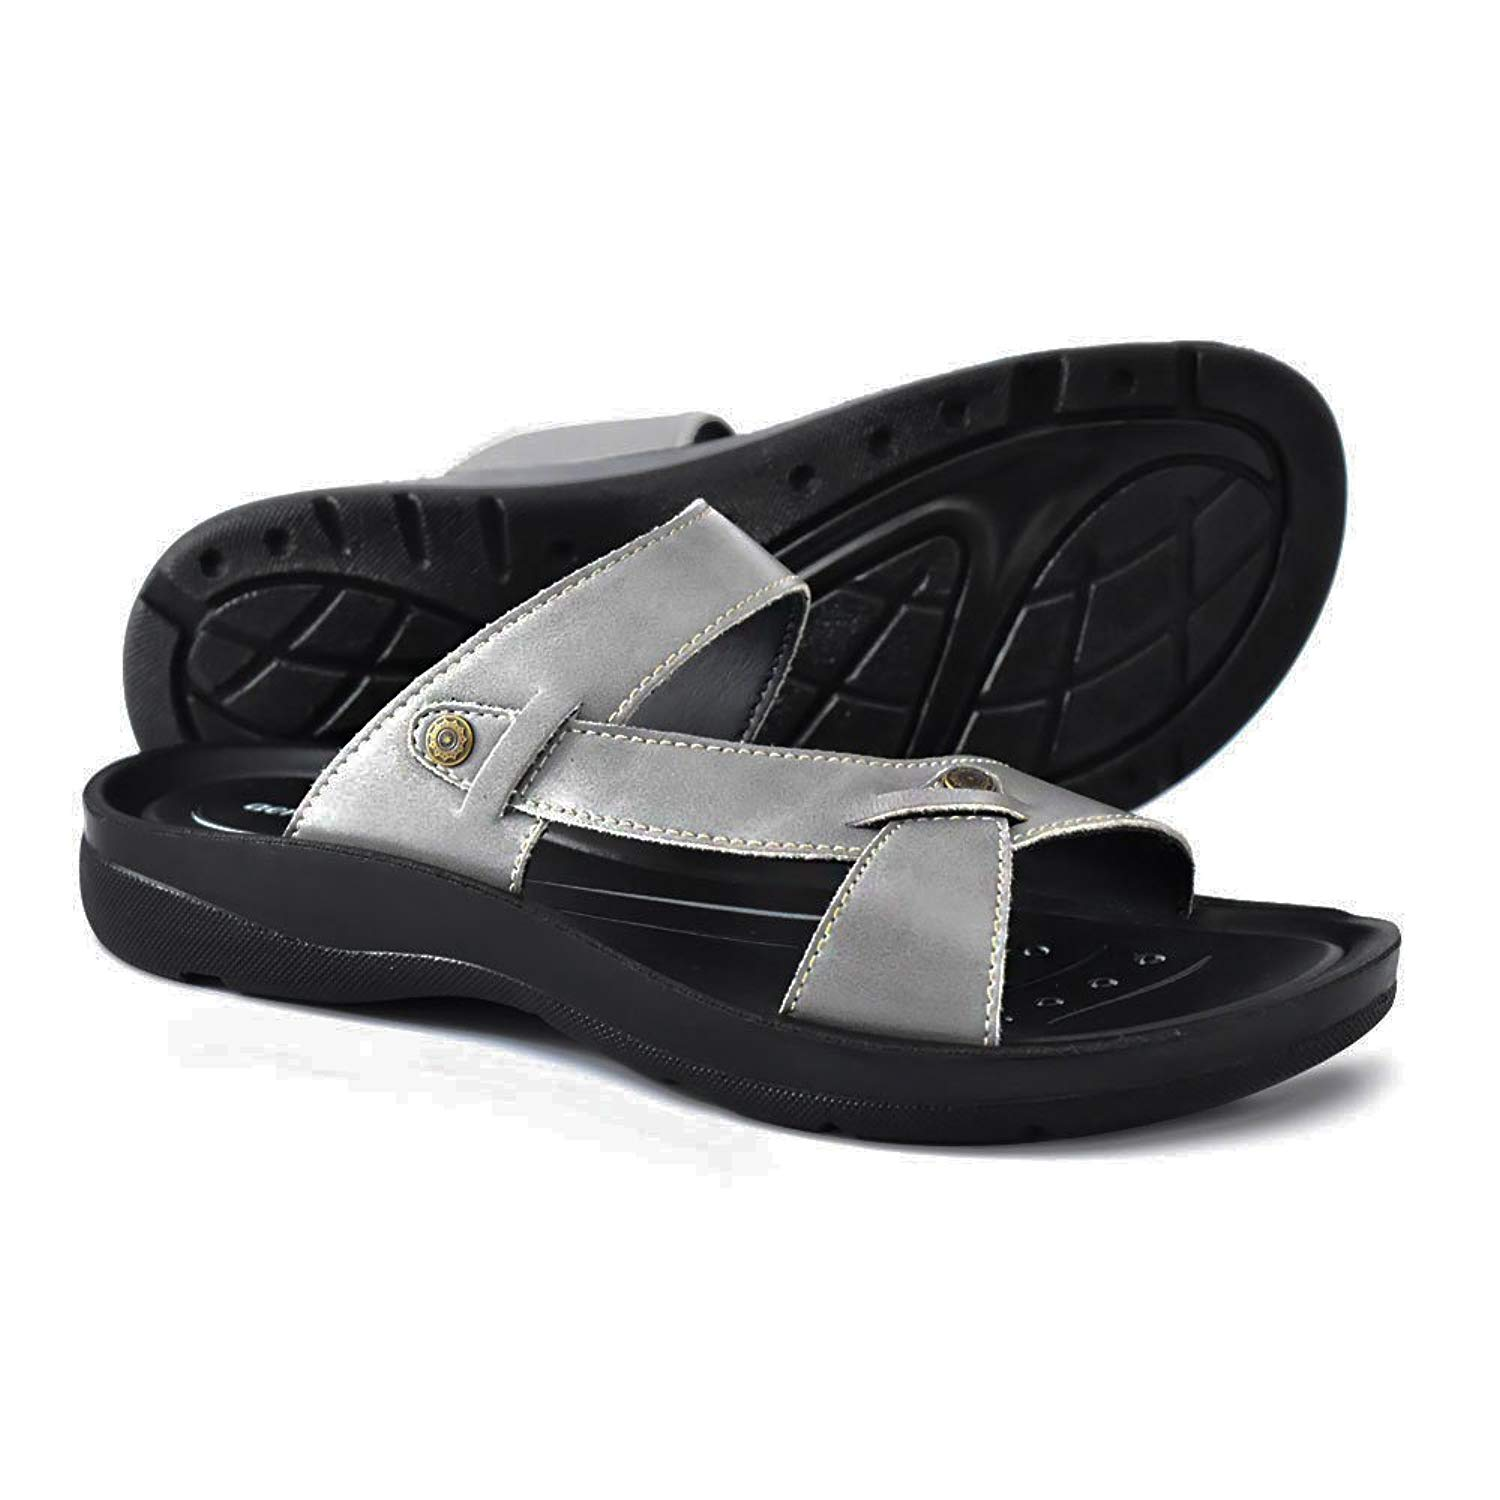 18dd4fd05cbe Get Quotations · AEROTHOTIC Orthotic Comfort Slip On Sandals and Flip Flops  with Arch Support for Comfortable Walk